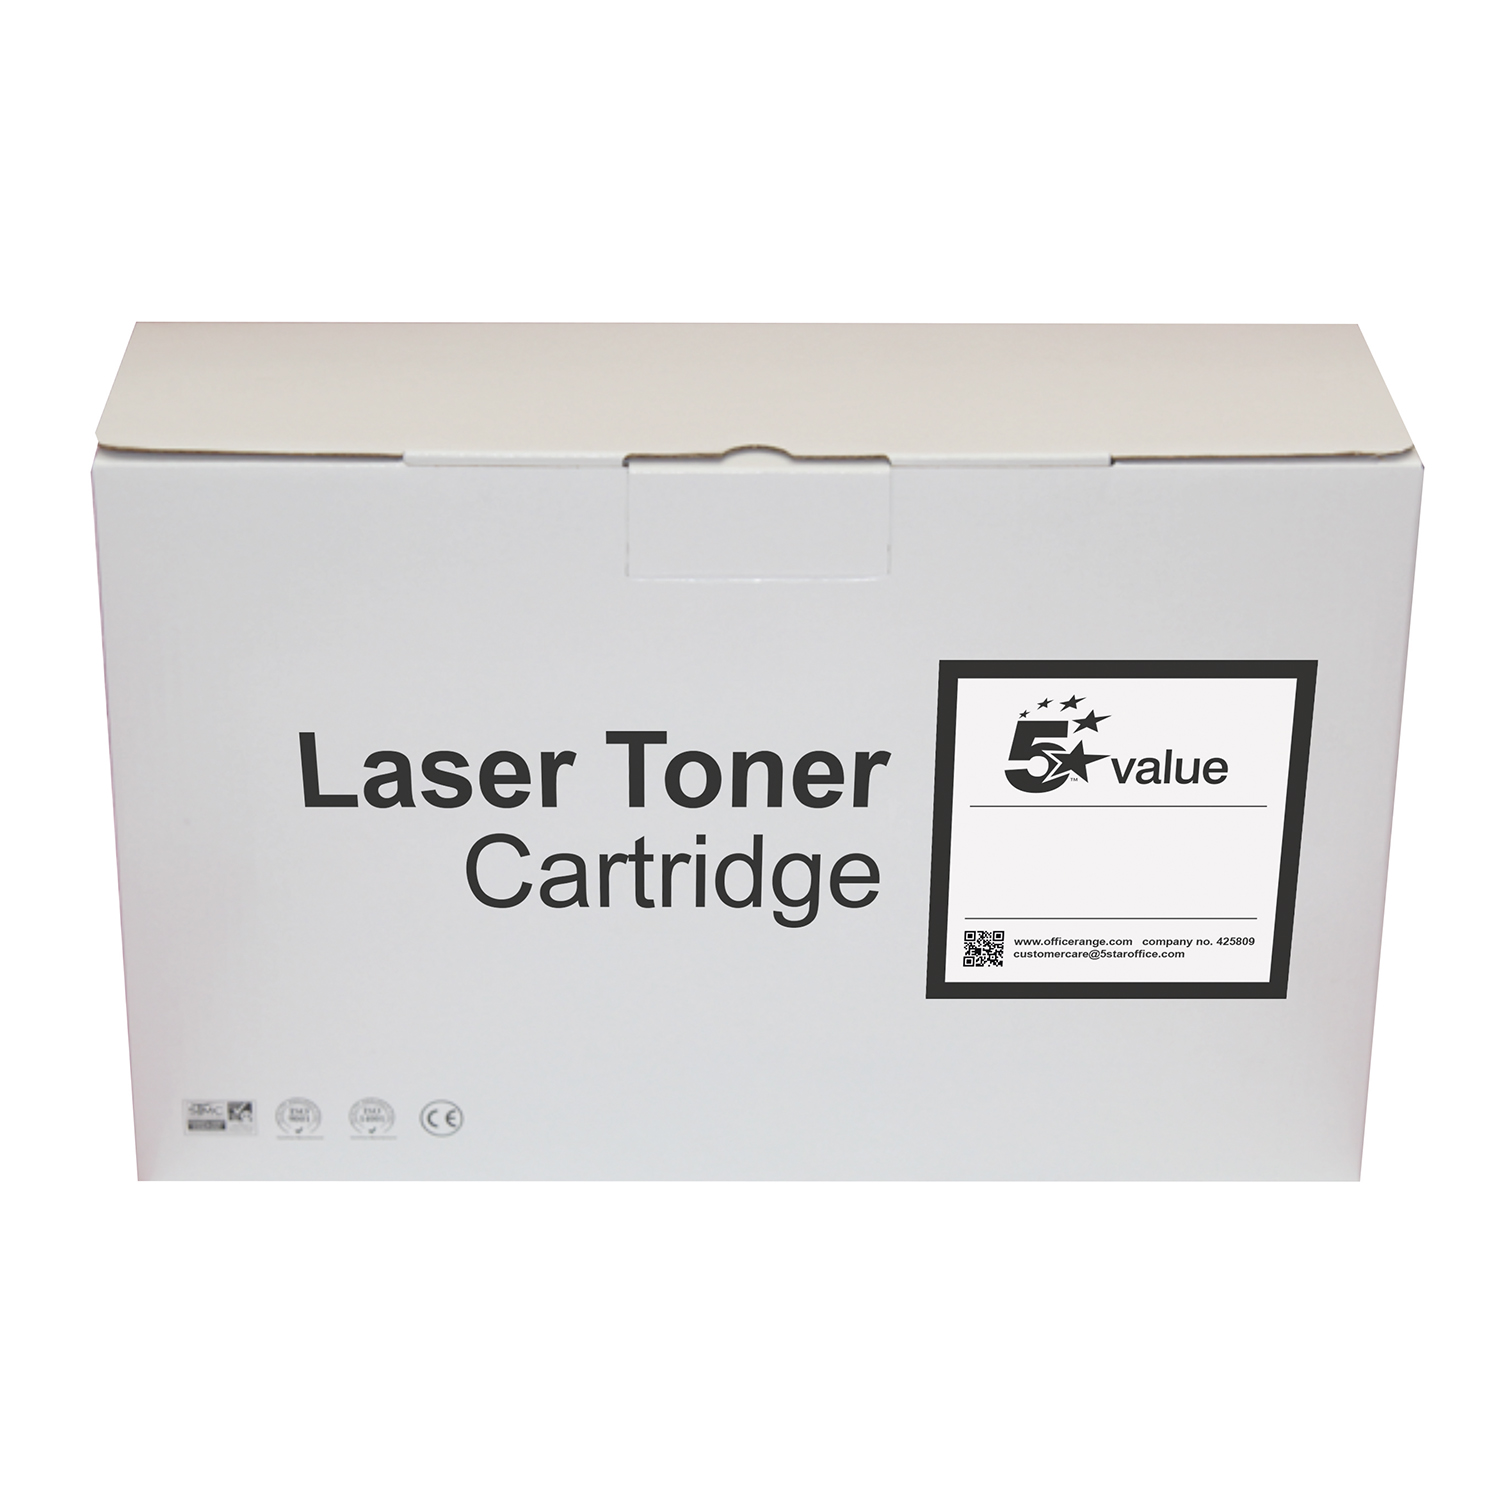 Laser Toner Cartridges 5 Star Value HP 35A Toner Cartridge Black CB435A